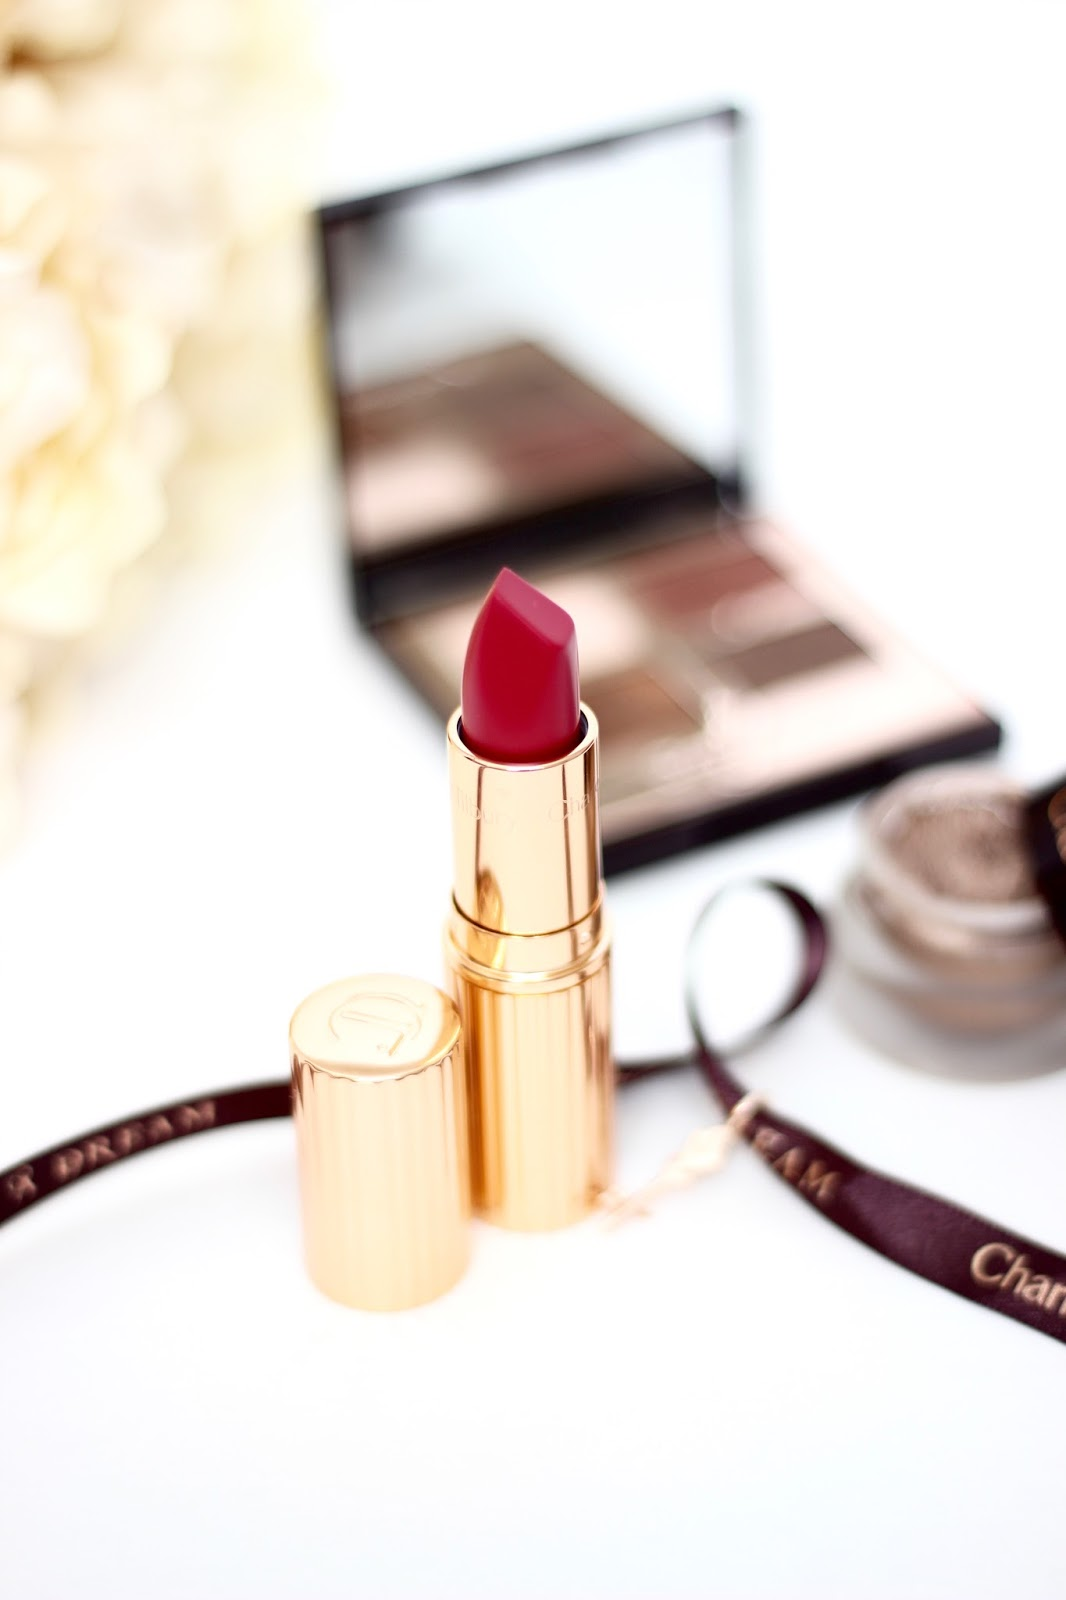 Charlotte Tilbury The Queen